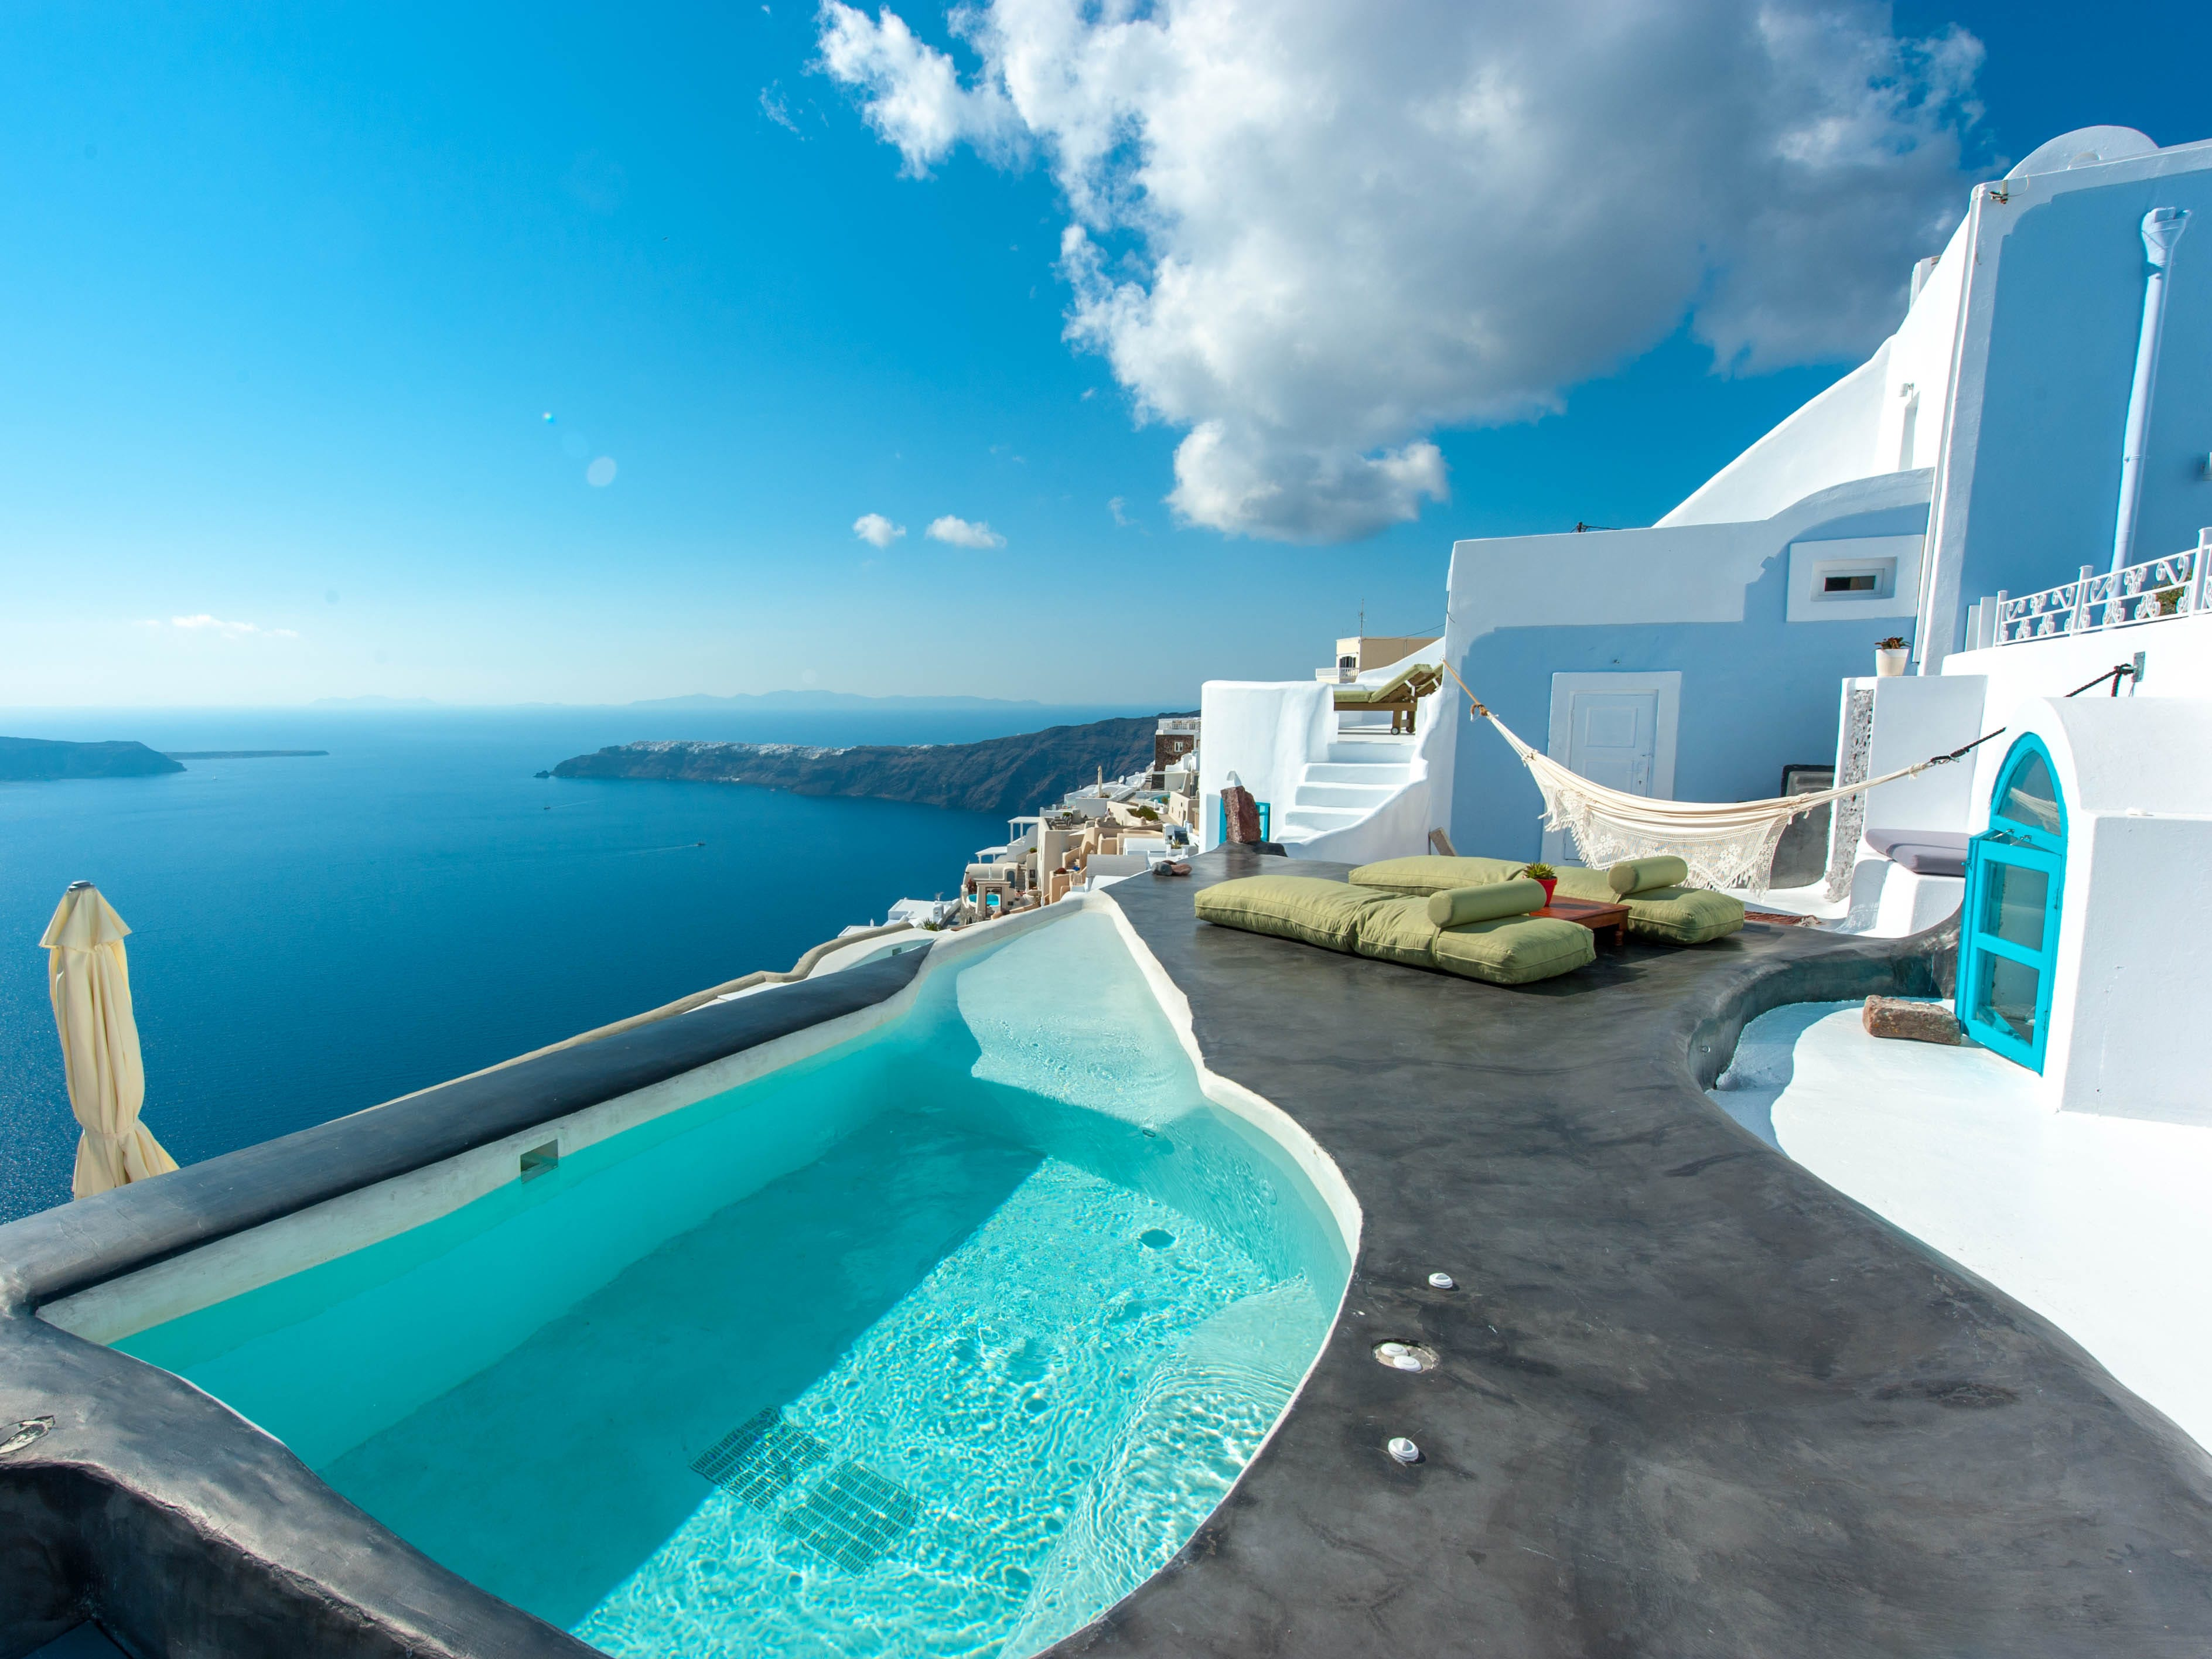 Sophia Luxury Suites, Santorini: Sophia Luxury Suites is set on the hillside in the heart of Imerovigli – the highest point of Santorini – meaning it has some of the best views around, plus a quieter vibe than busy Oia or Fira. Each room has its own balcony or terrace with a plunge pool or hot tub (aside from the Character Cave Rooms, which have indoor plunge pools instead) and stunning views out to the ocean, the caldera and scenic Skaros Rock.